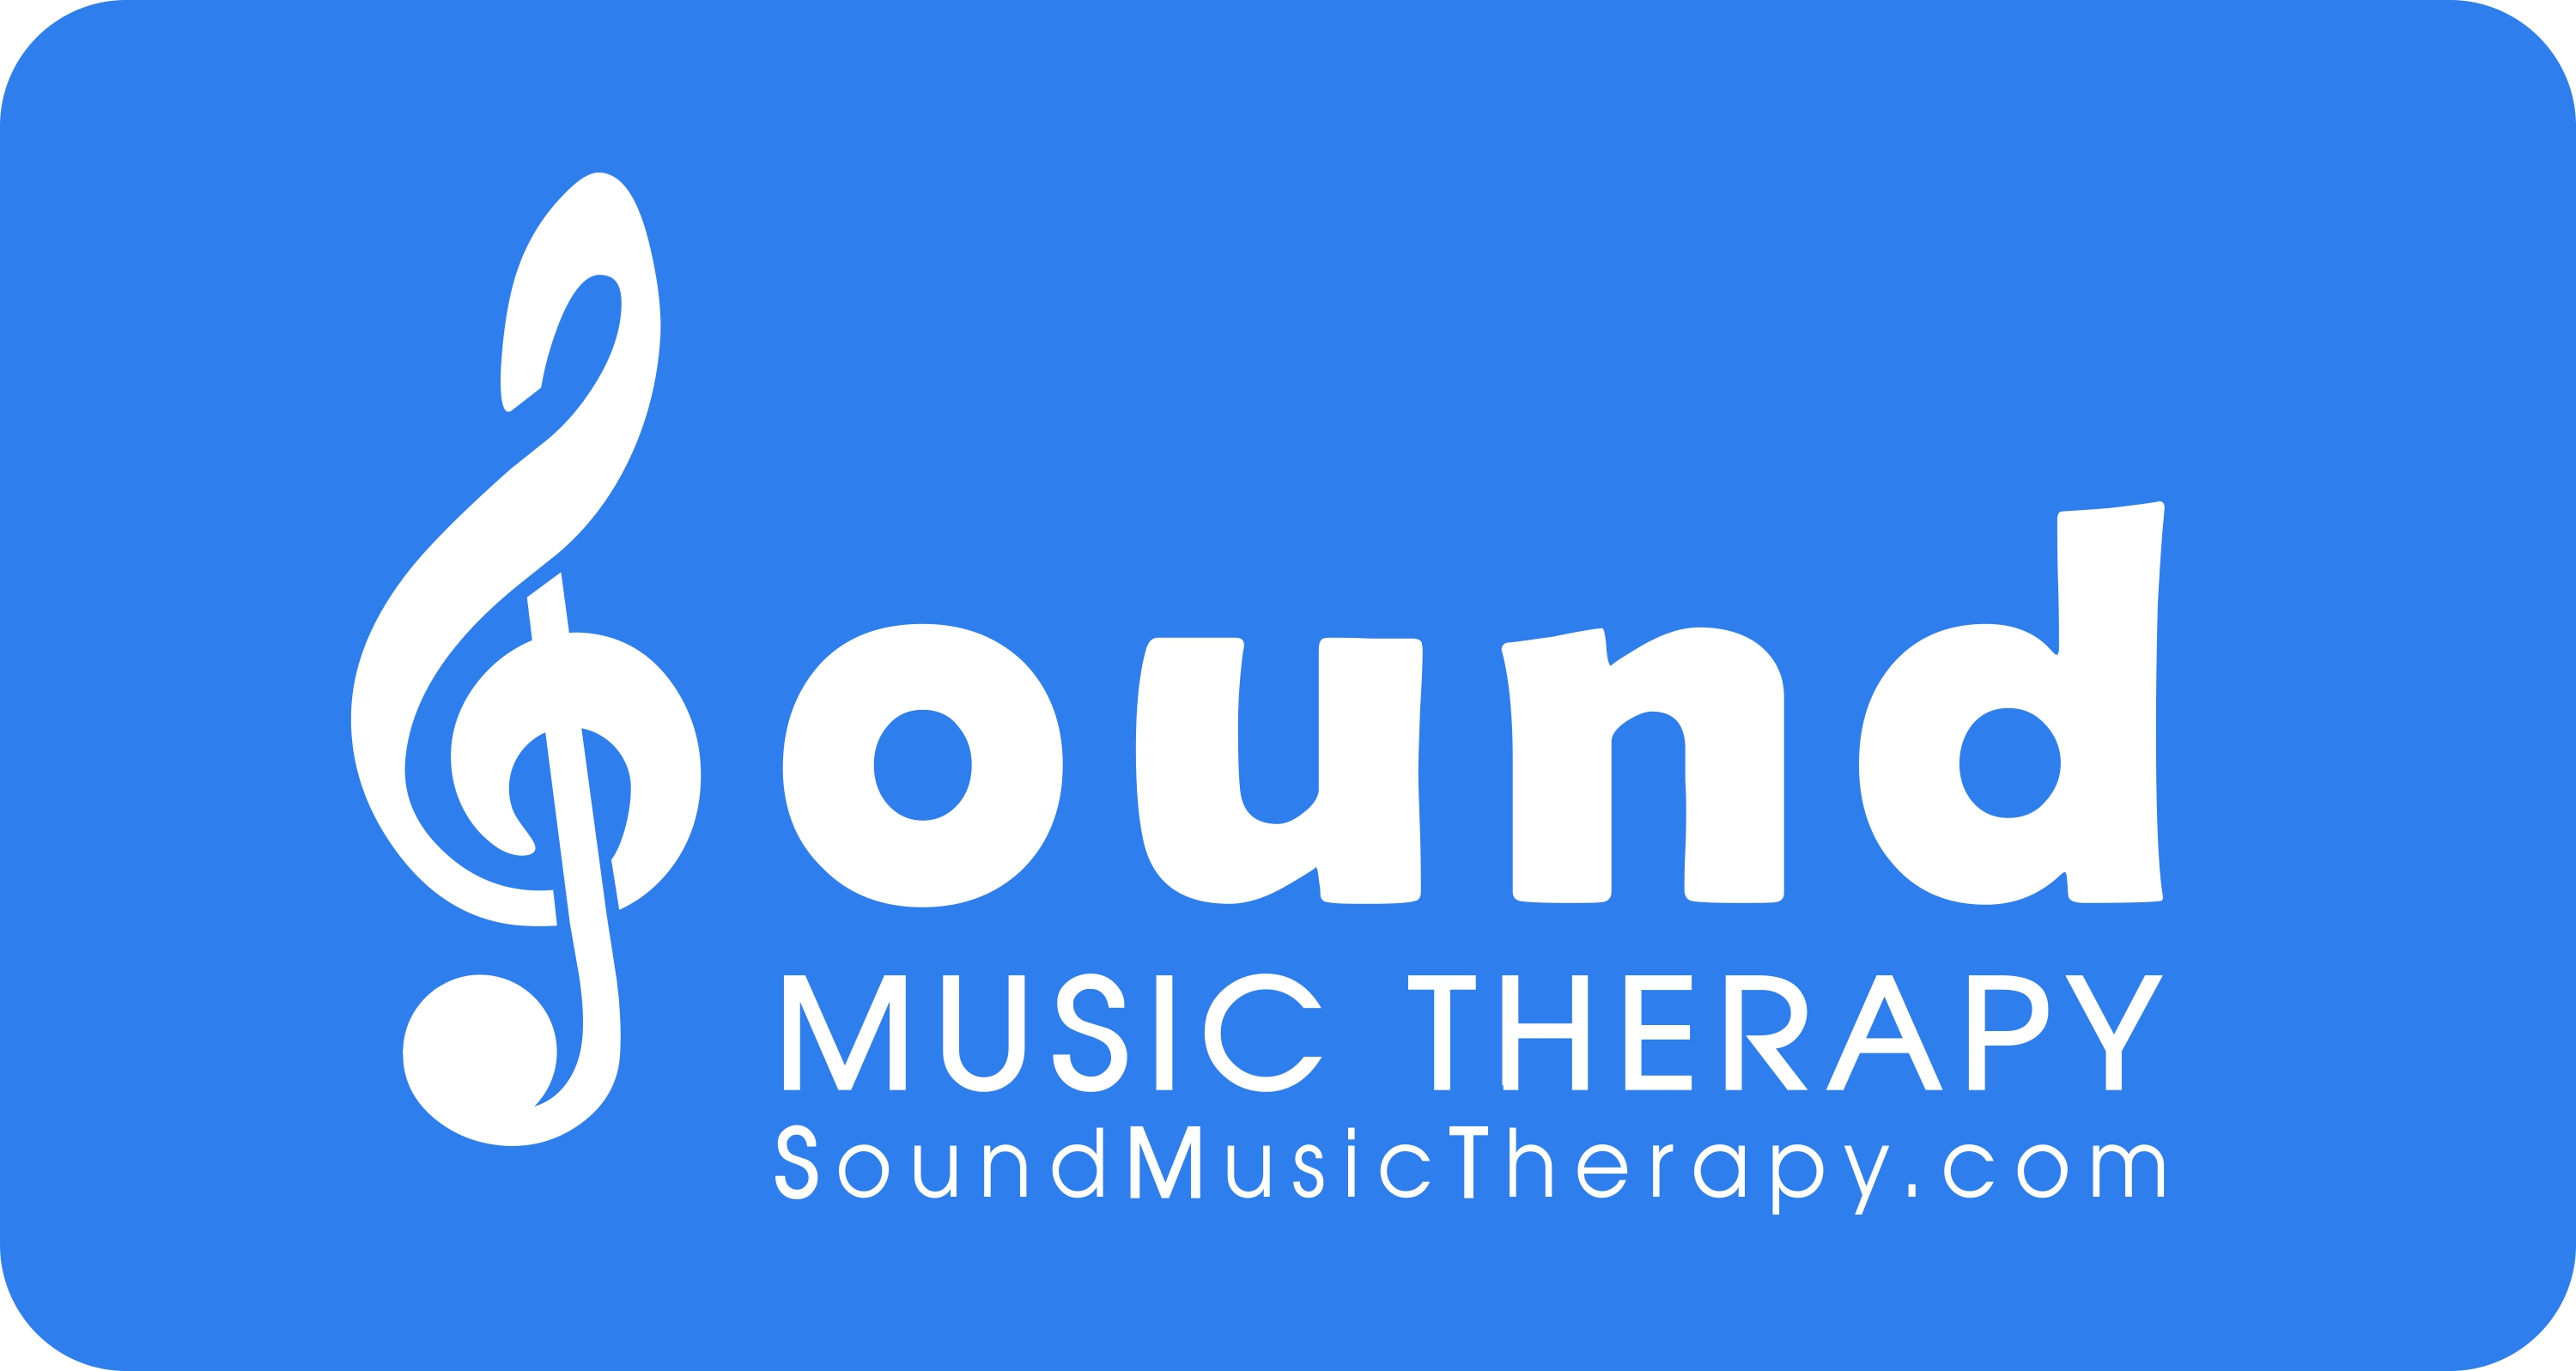 Music Therapy Services for Individuals with Special Needs, in Medford